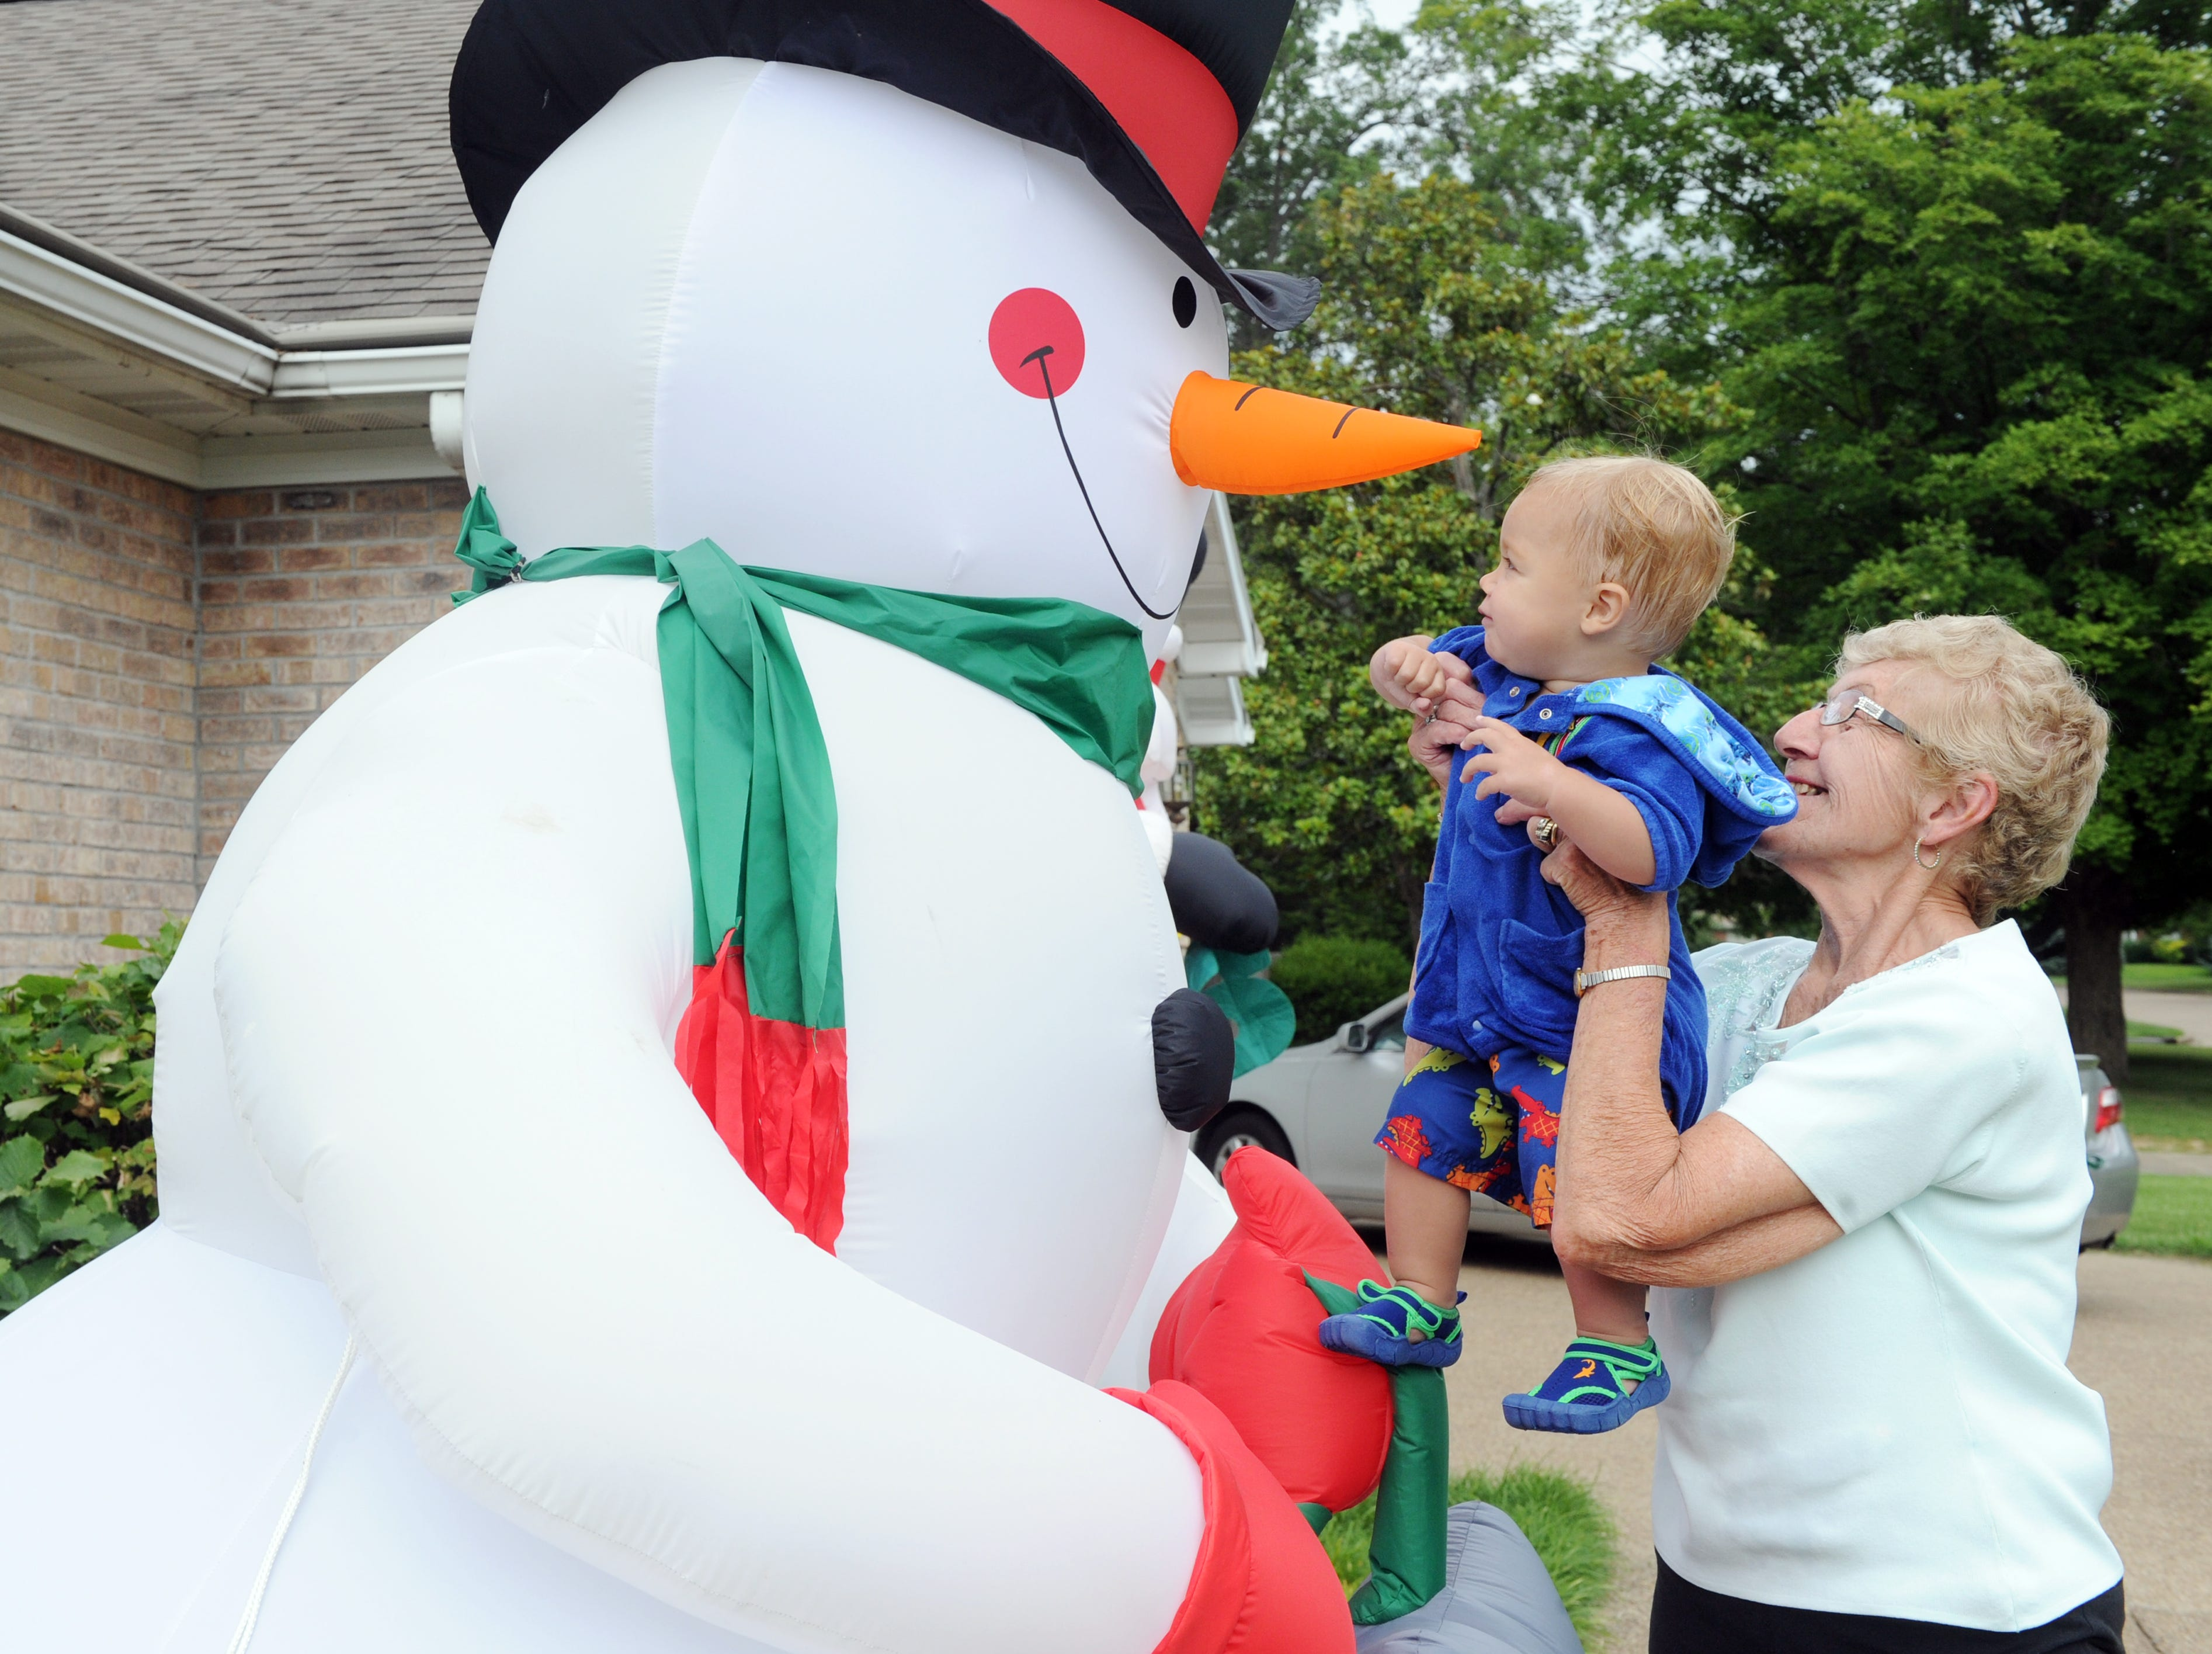 Rita Durnin lifts her great grandson, Trent Oeltjen, 16 months, up to see the inflated snowman outside Rita's house after swimming in the pool on July 19, 2014. Because Rita's children  and grandchildren live in New York, California, Iowa, Wisconsin and Minnesota getting together for the holidays is not possible, so two years ago they started celebrating Christmas in July and enjoying family time in June. Rita sets up some of her decorations both outside and inside for her great grandchildren to enjoy.